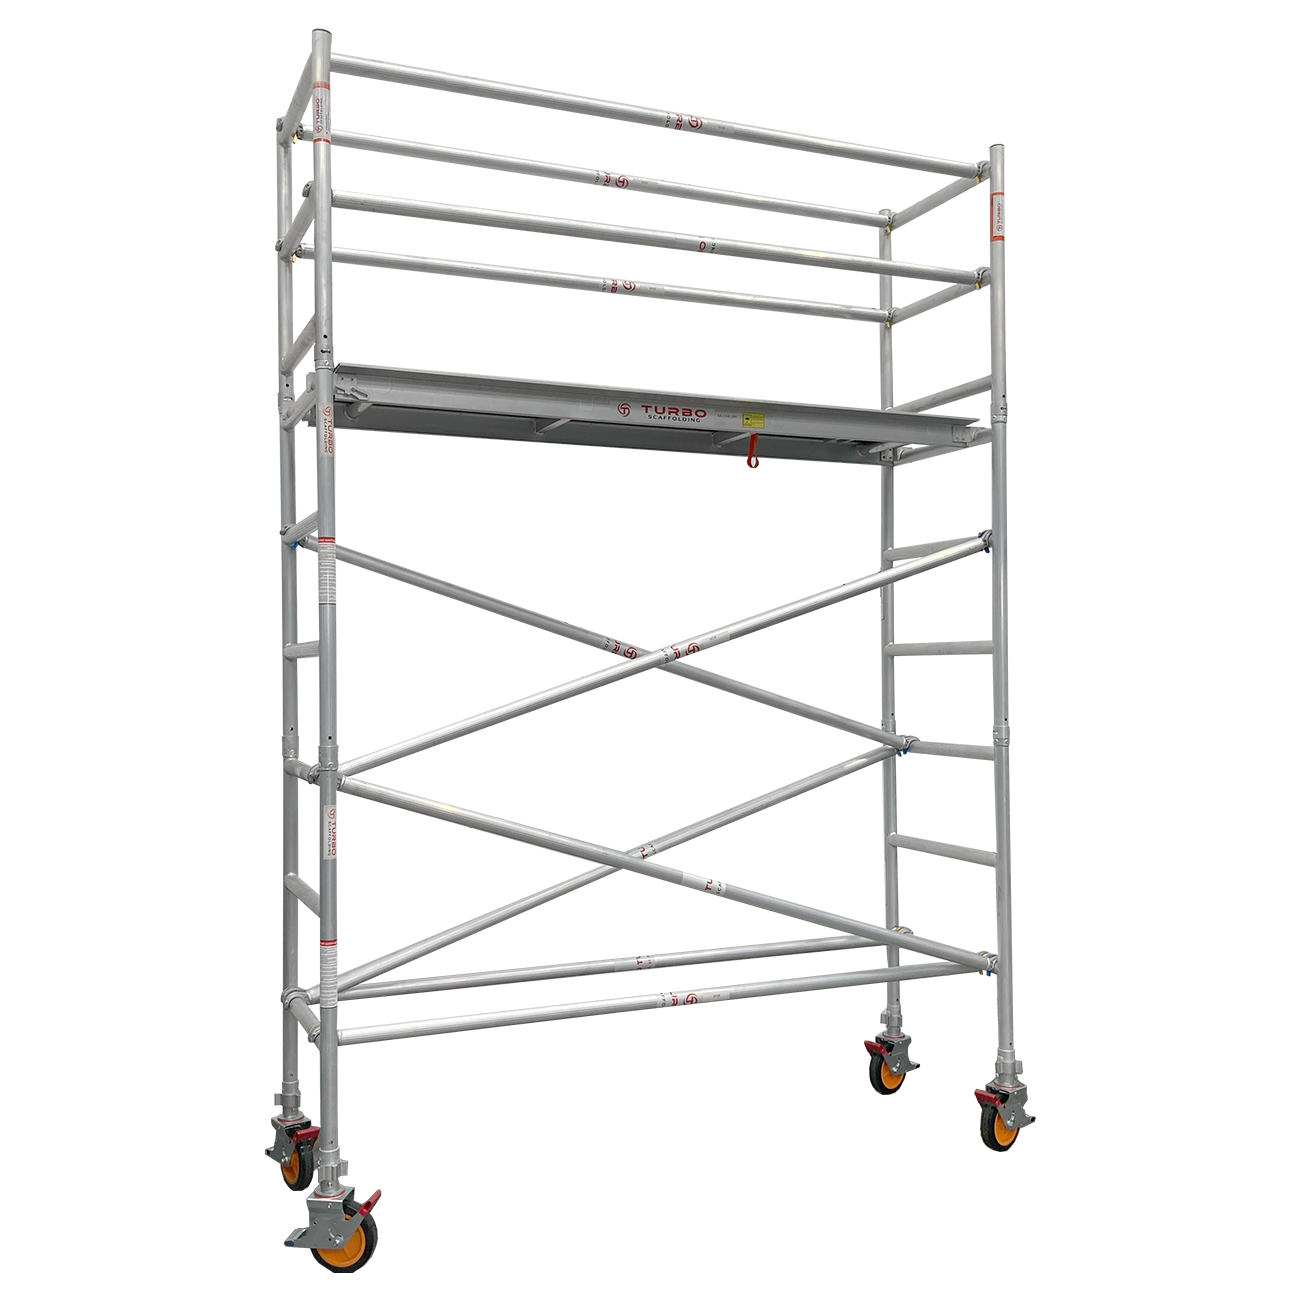 2.7m – 3.0m Wide Aluminium Mobile Scaffold Tower (Standing Height)